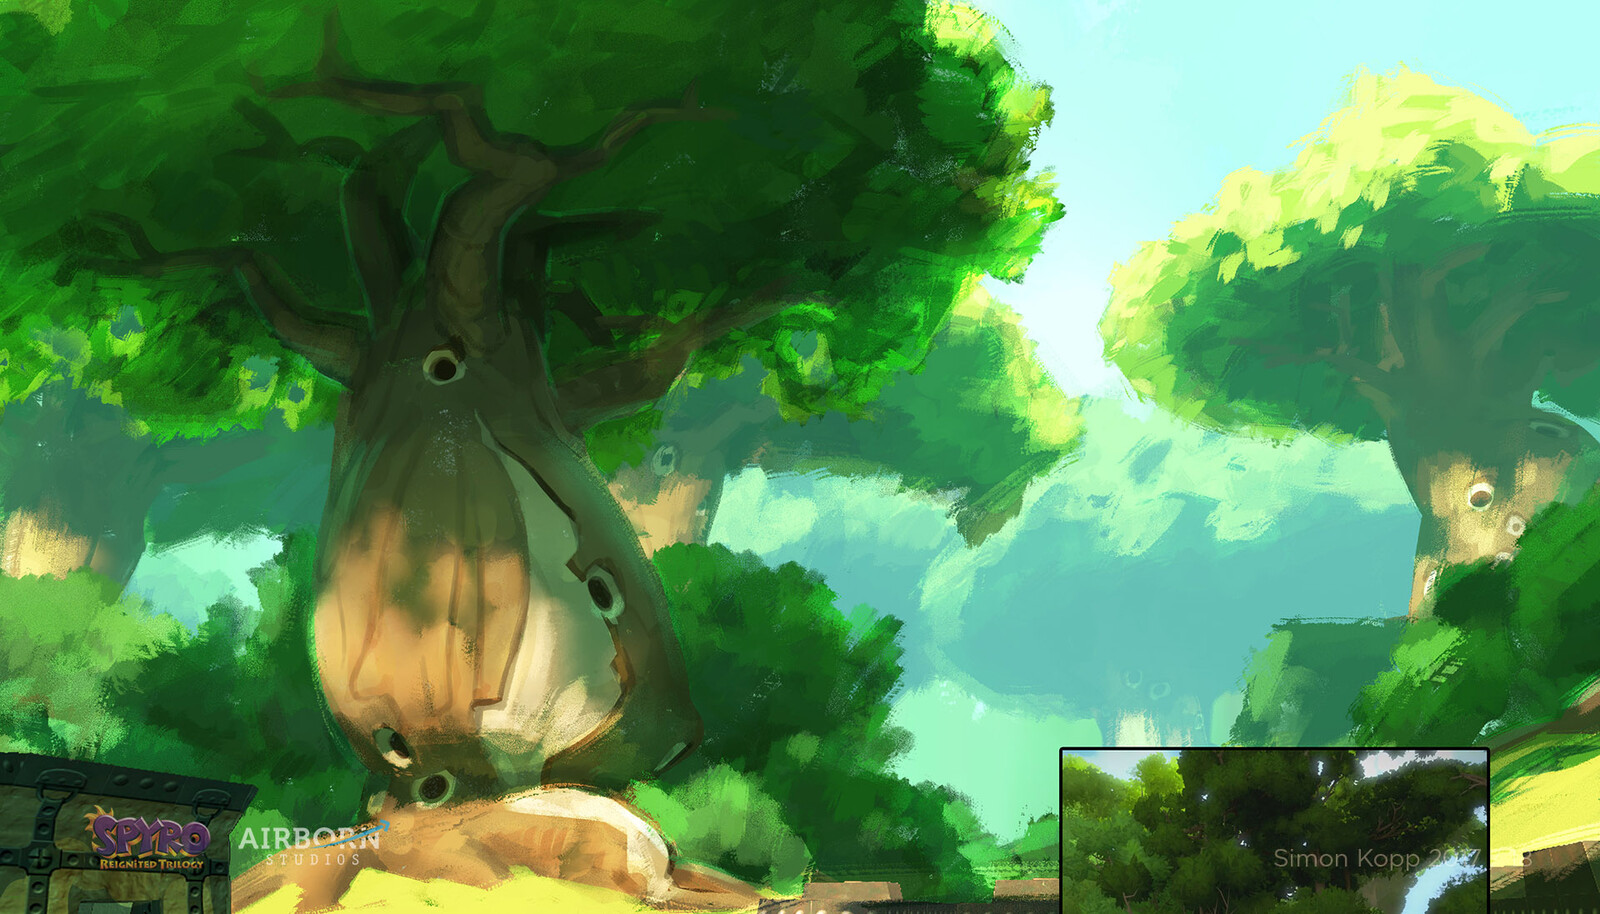 background overpaint